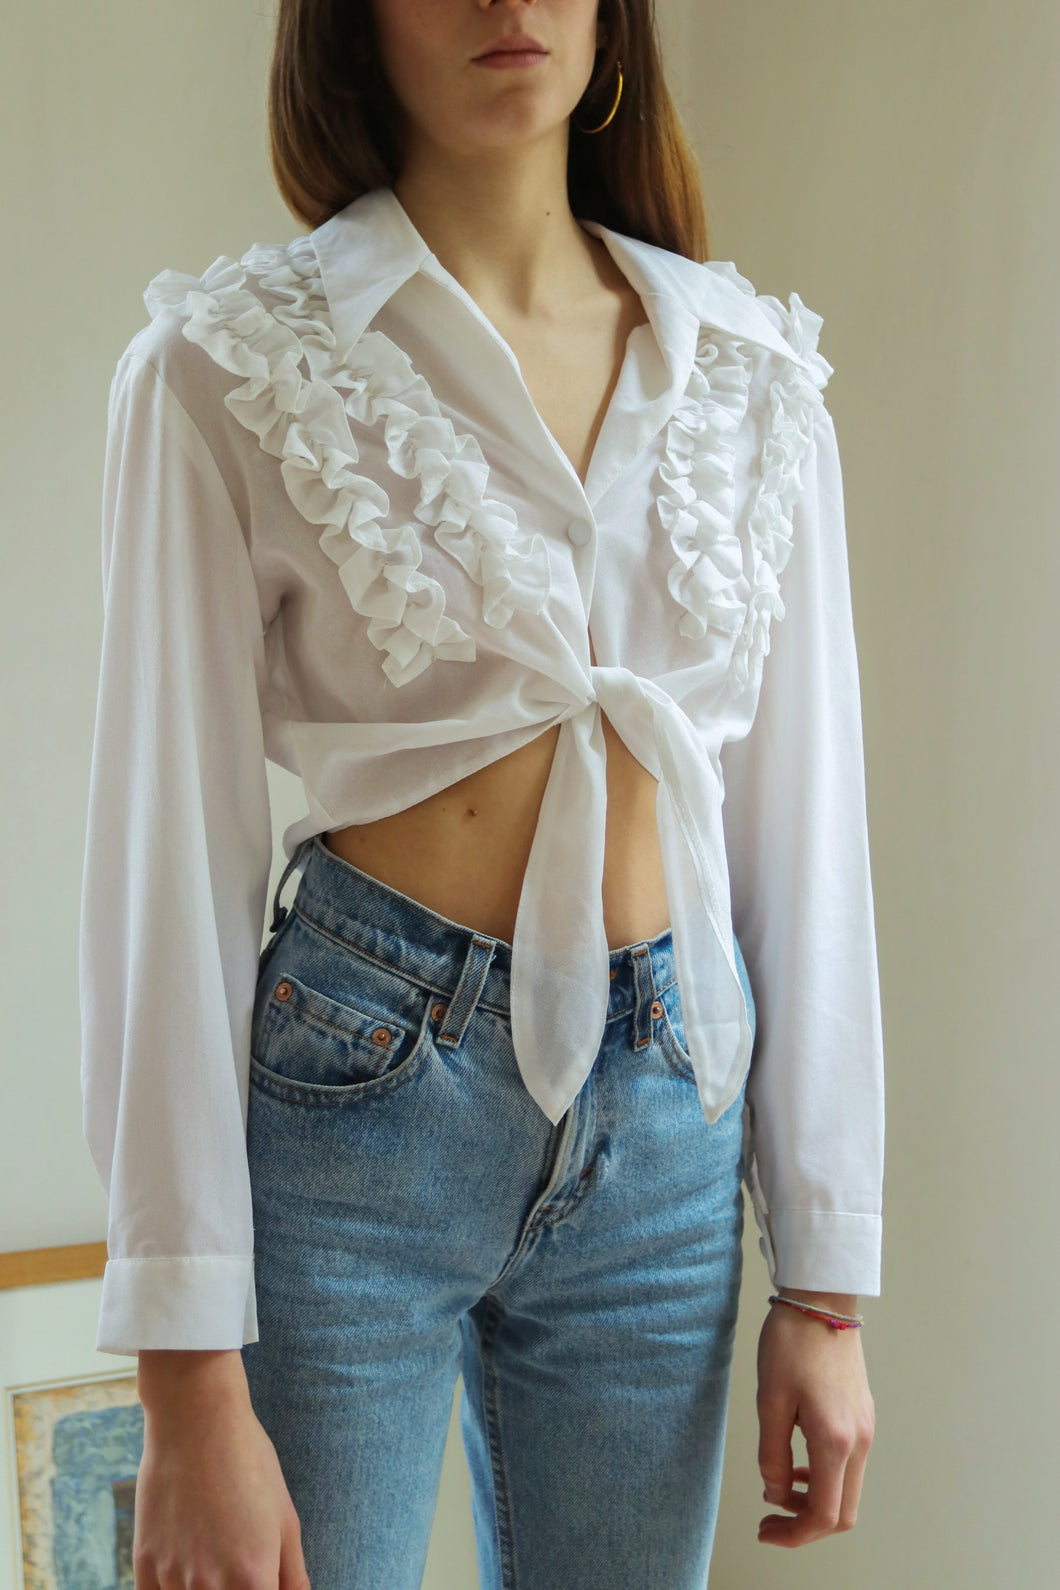 Chantal Rosner Ruffle Shirt